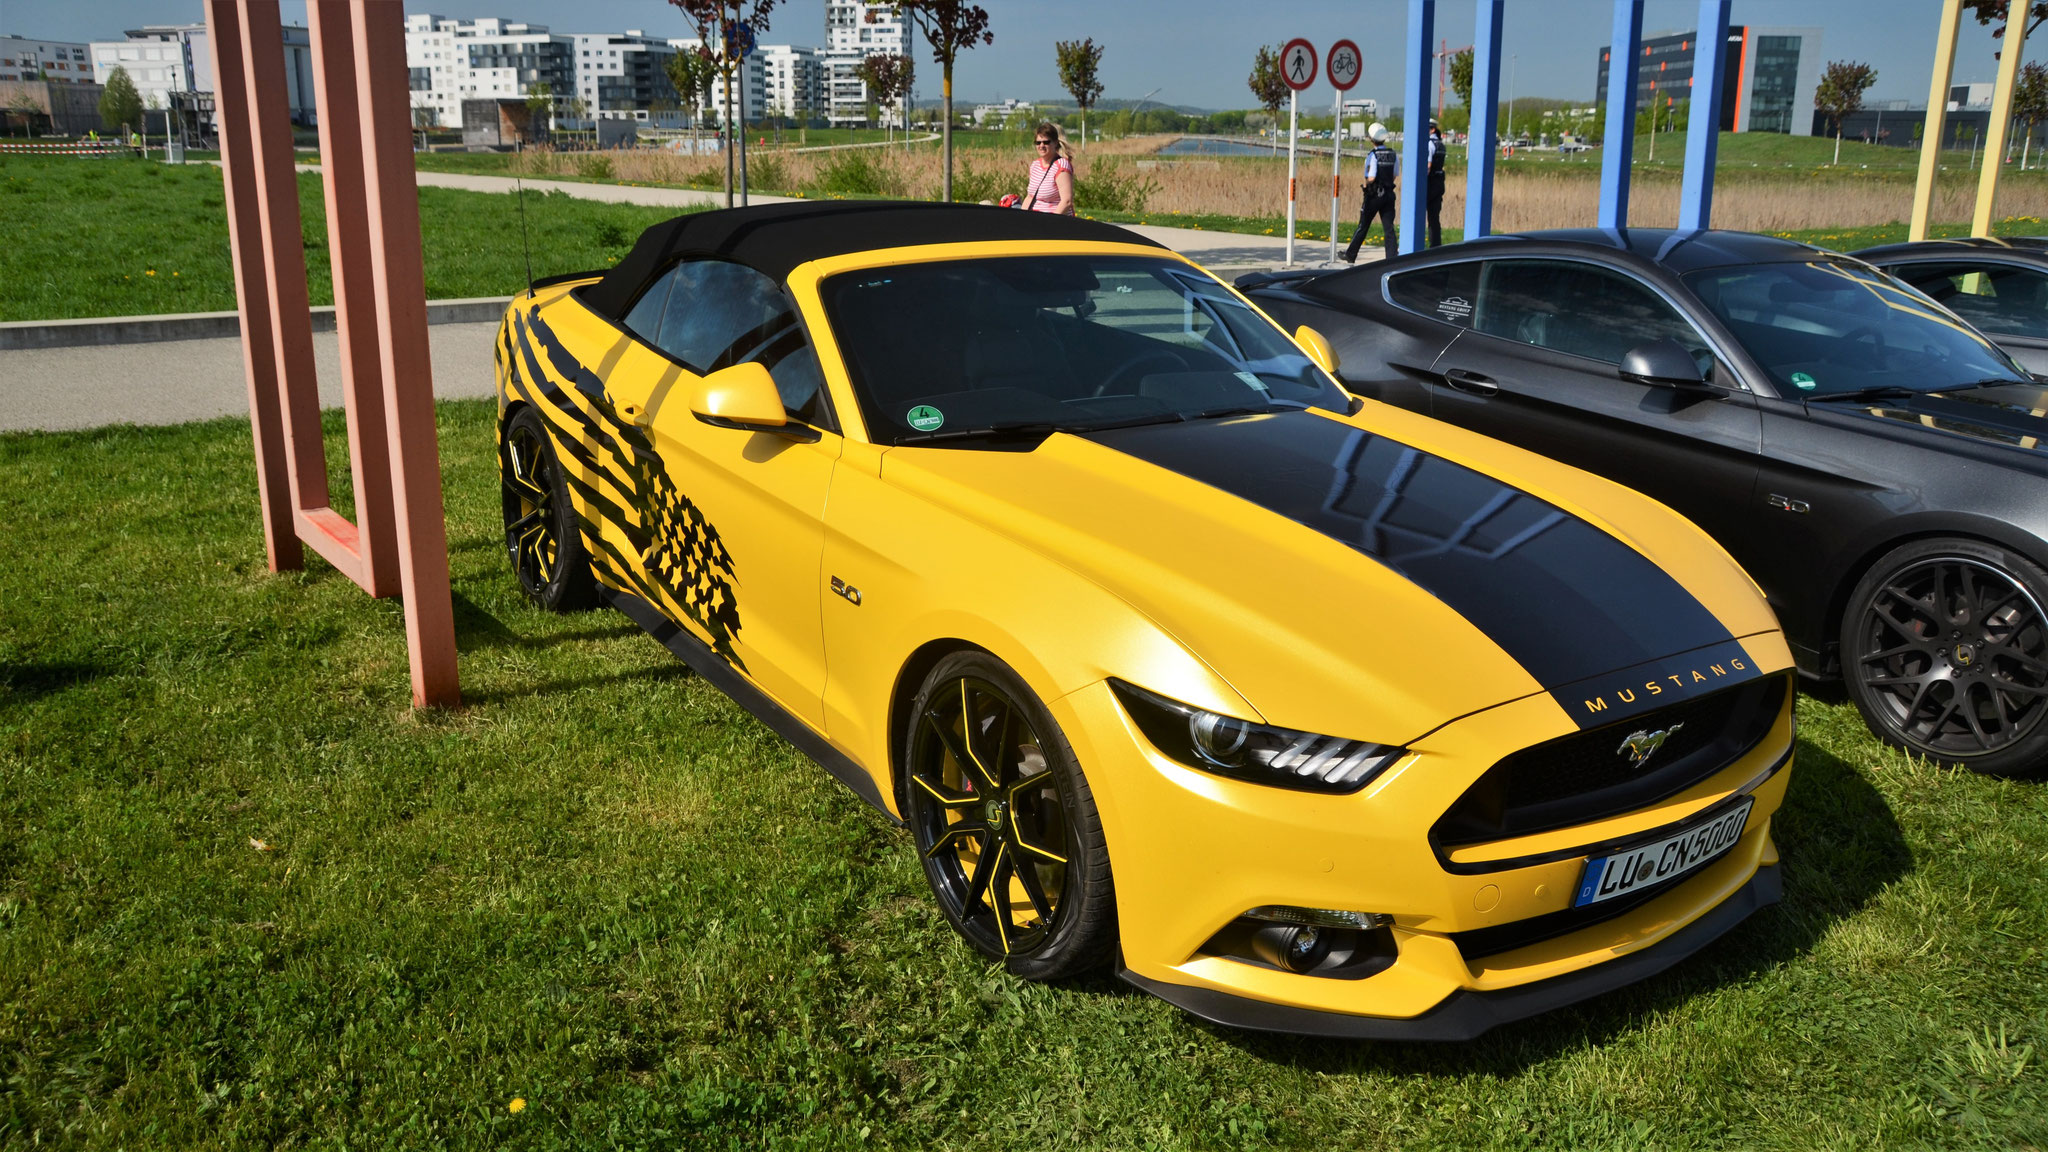 Ford Mustang GT Cabrio - LU-CN-5000